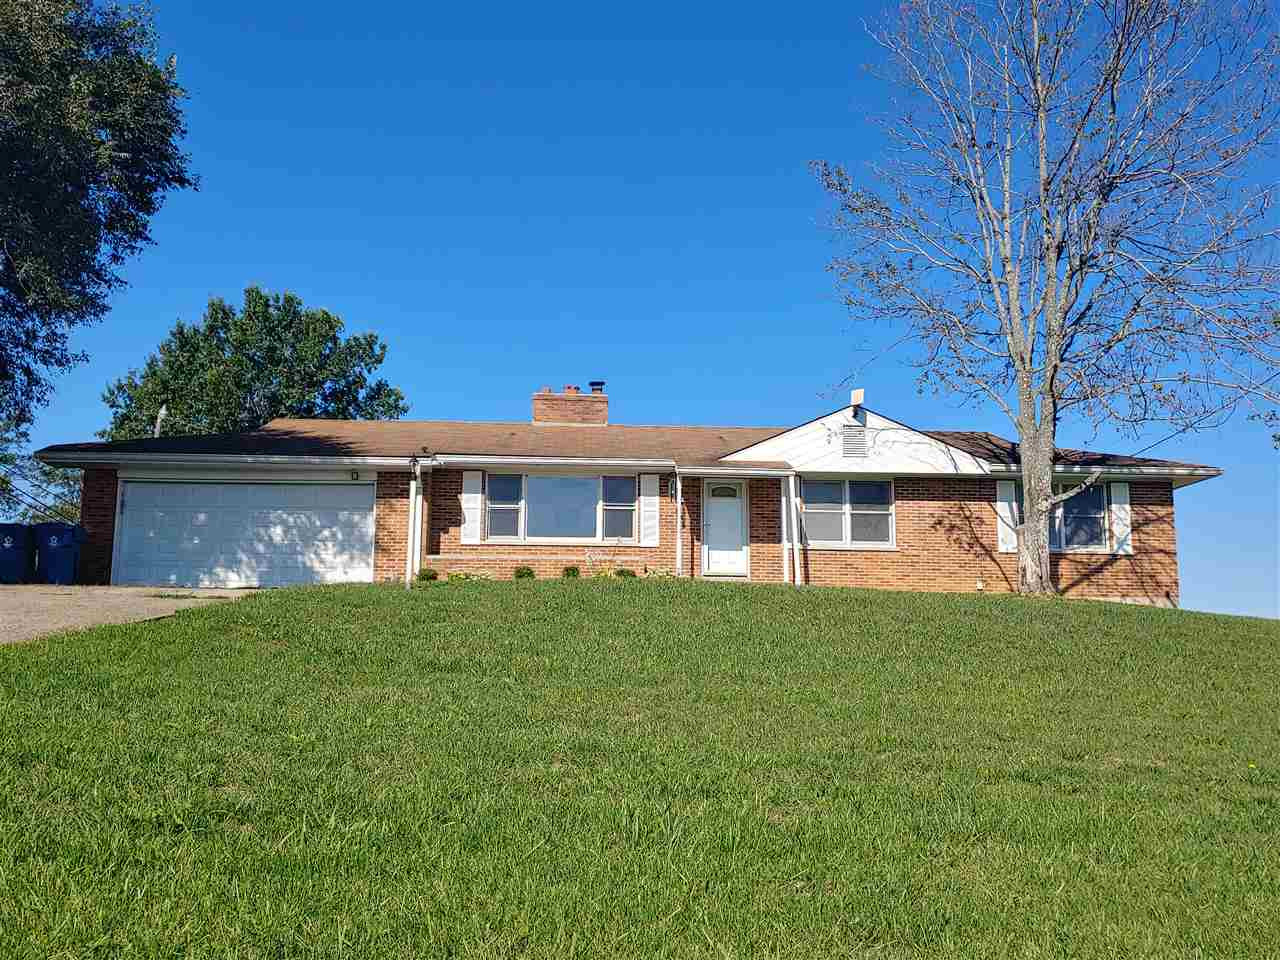 Photo 2 for 225 Ragtown Rd Corinth, KY 41010